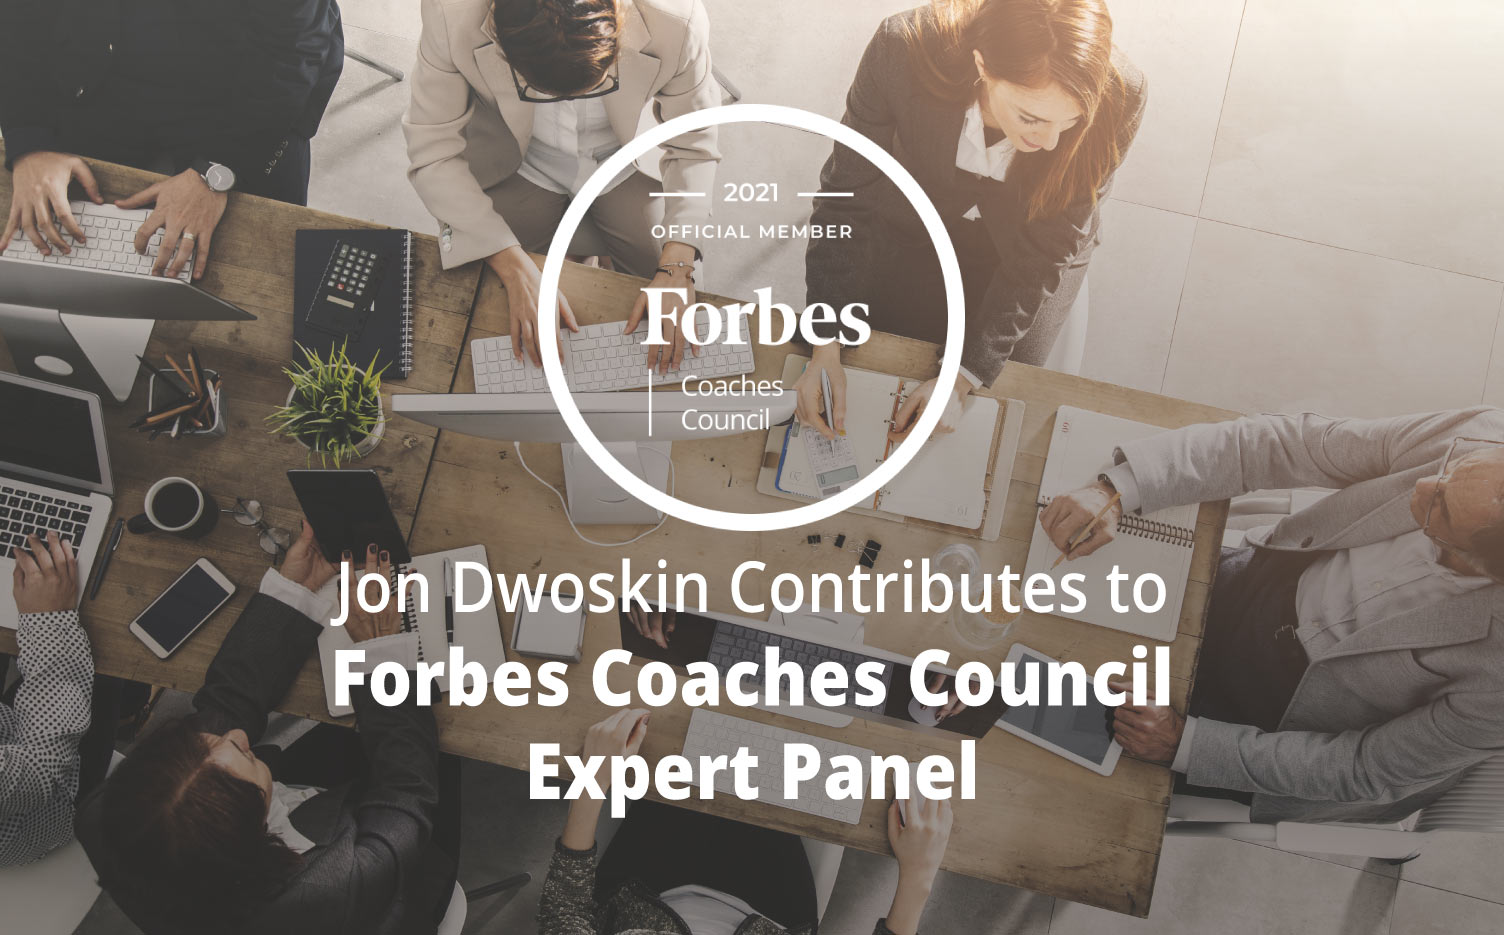 Jon Dwoskin Contributes to Forbes Coaches Council Expert Panel: 15 Ways To Support Various Work Styles Without Sacrificing Collaboration